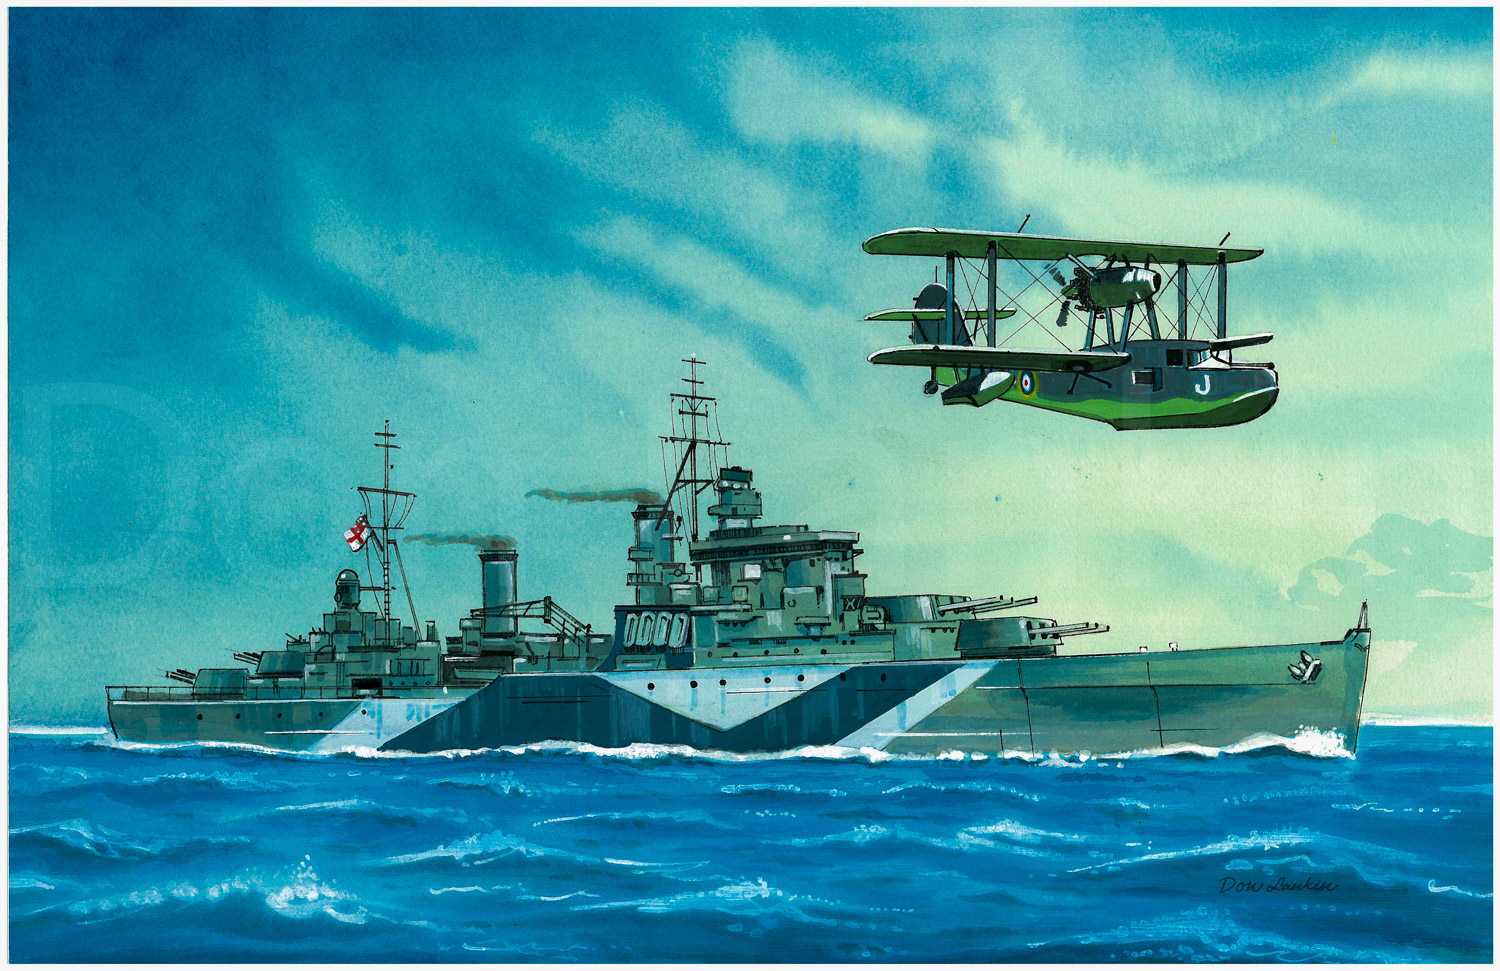 """Fiji"" class cruiser H.M.S. Jamaica 1943 - Armament: 12-6 inch guns, Speed: 32 kts. Carried a Walrus amphibian aircraft."